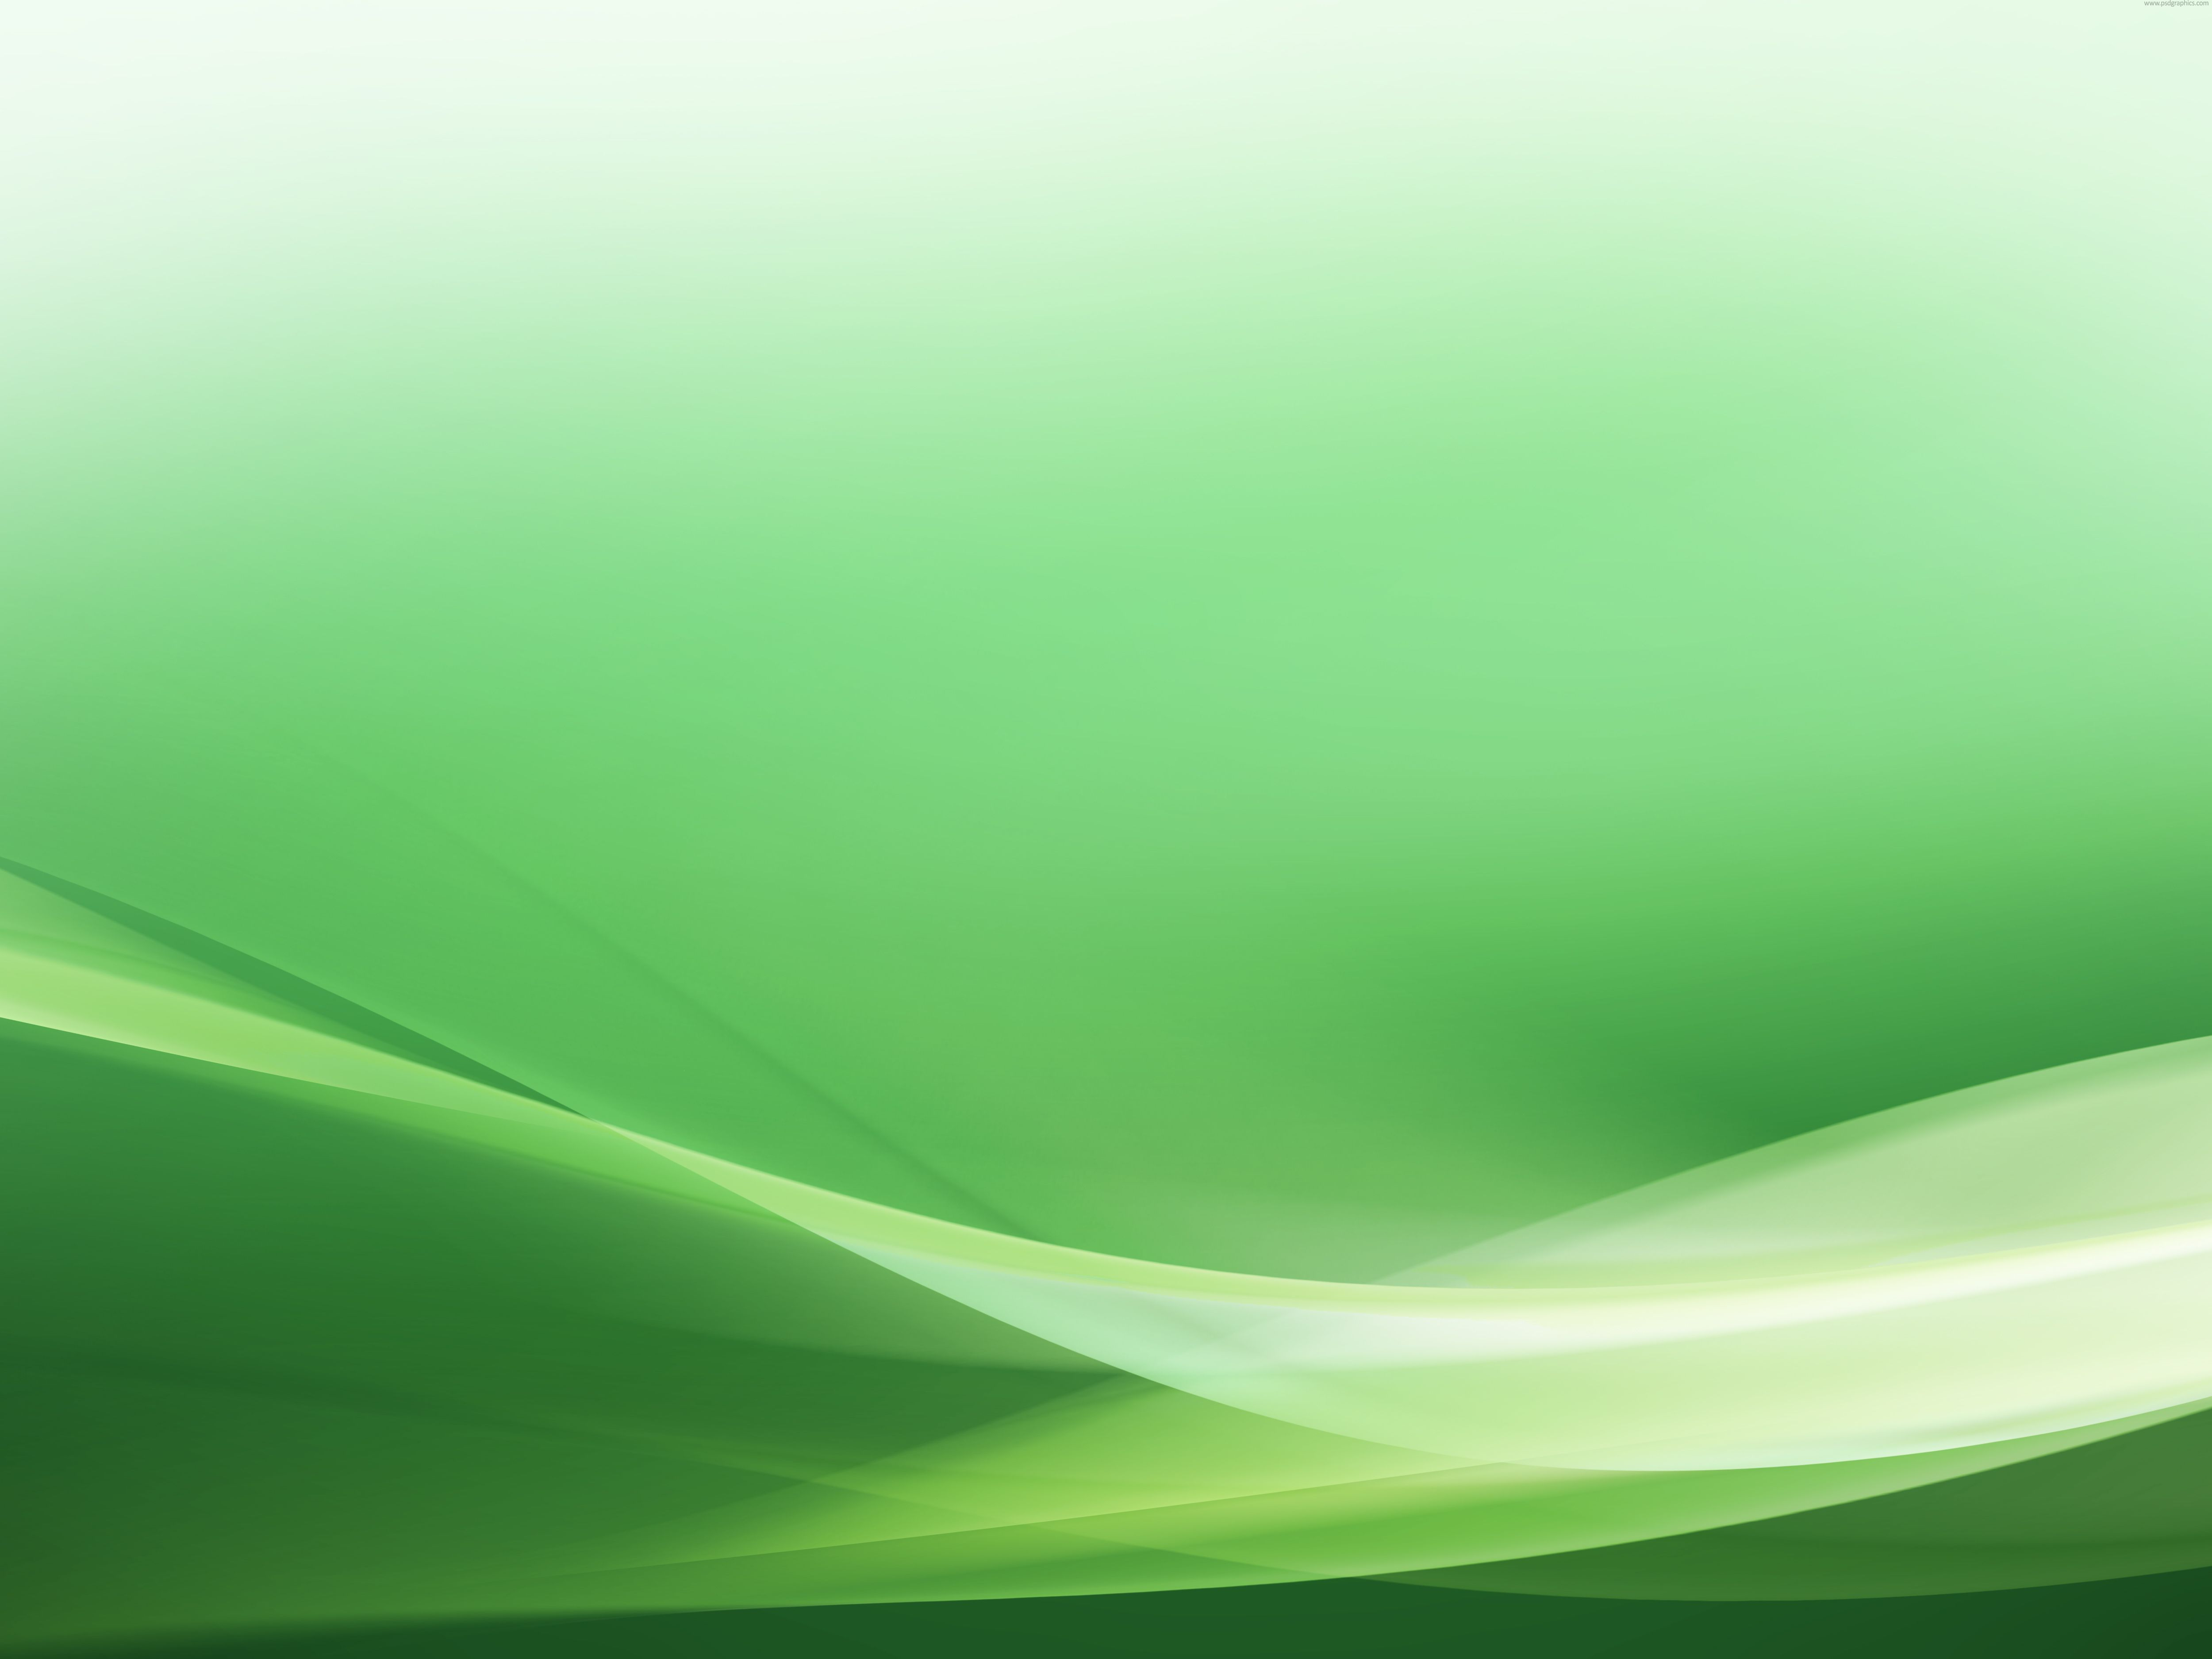 Xiaomi Redmi Note 5 Pro Wallpaper With Abstract Blue Light: Green Background 36